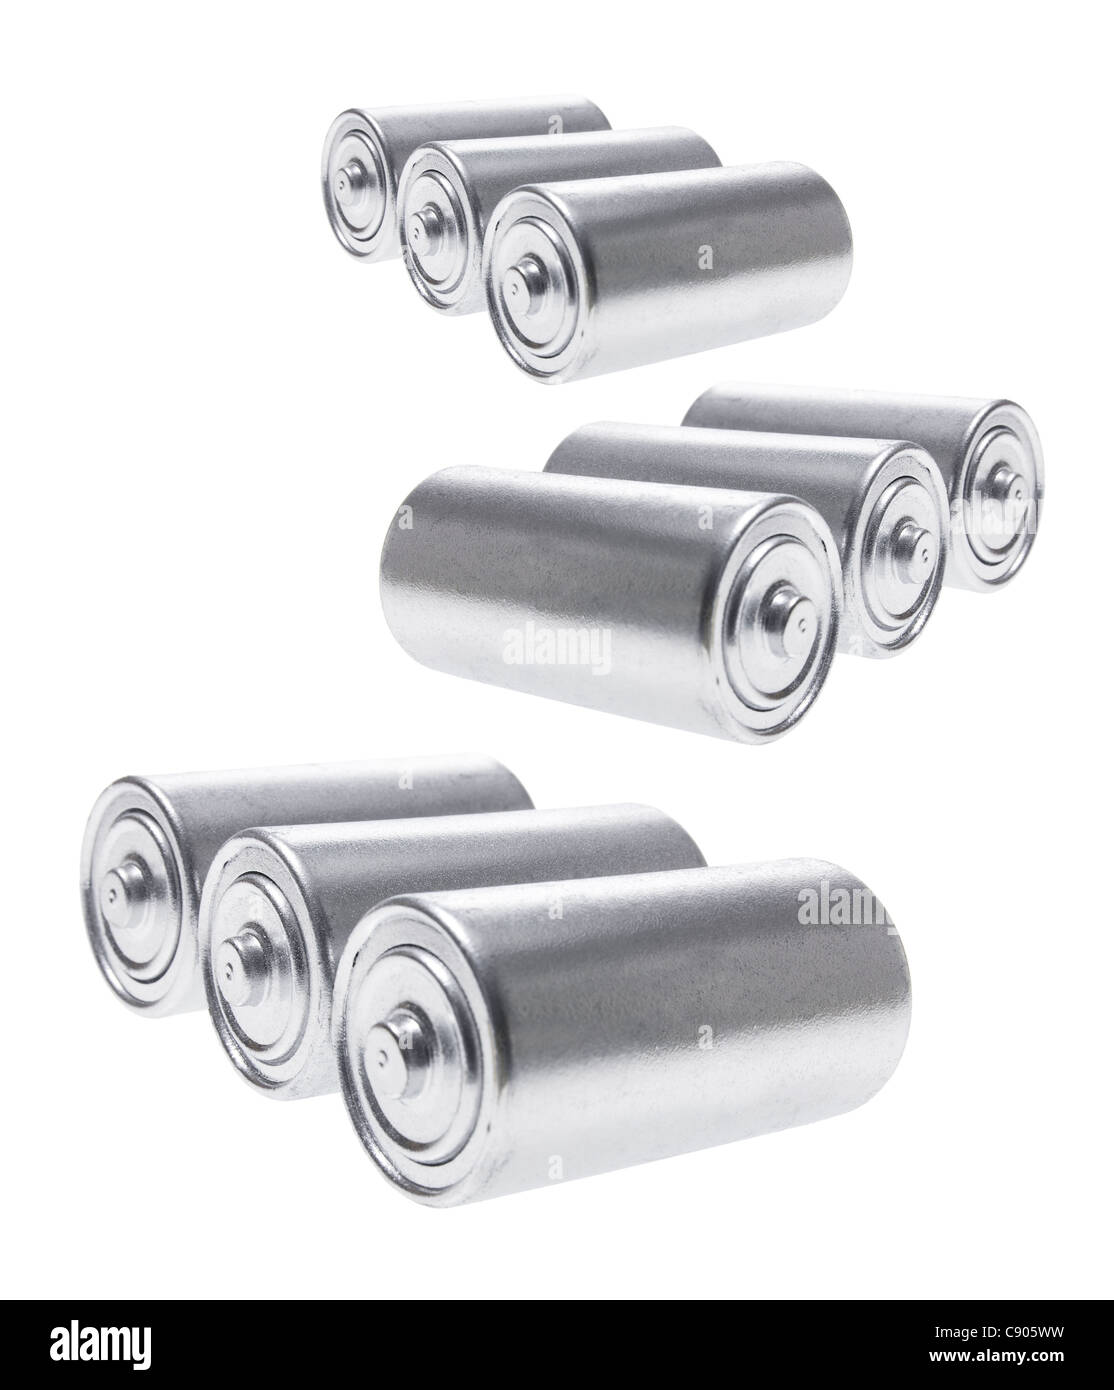 Batteries - Stock Image